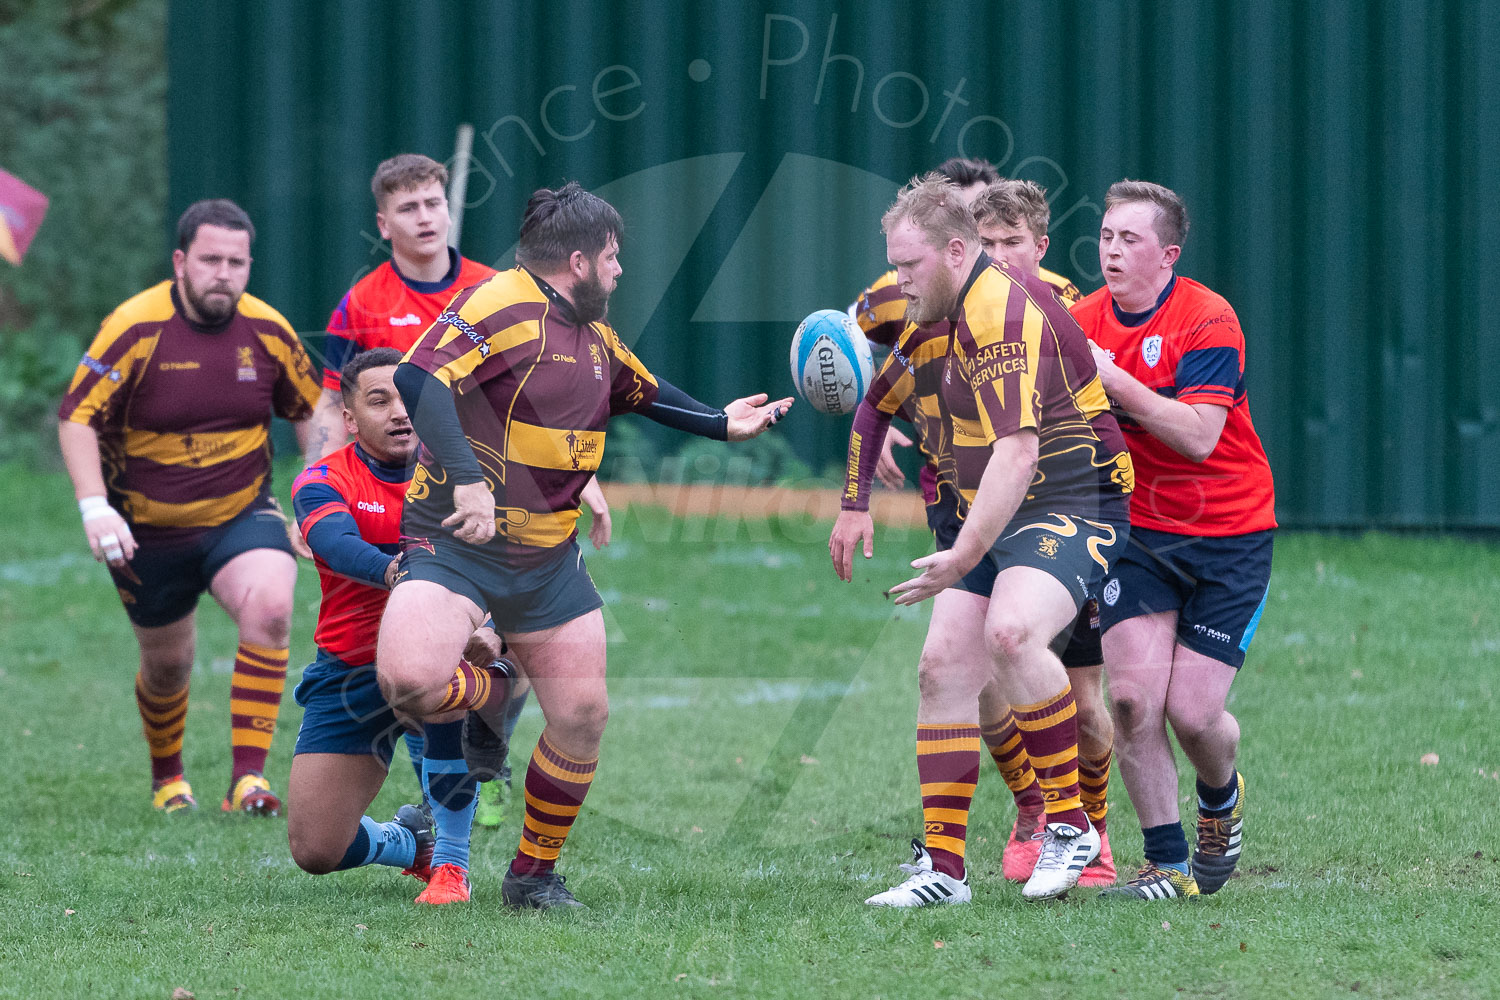 20181027 Amp Extras vs St Neots 2nd XV #2281